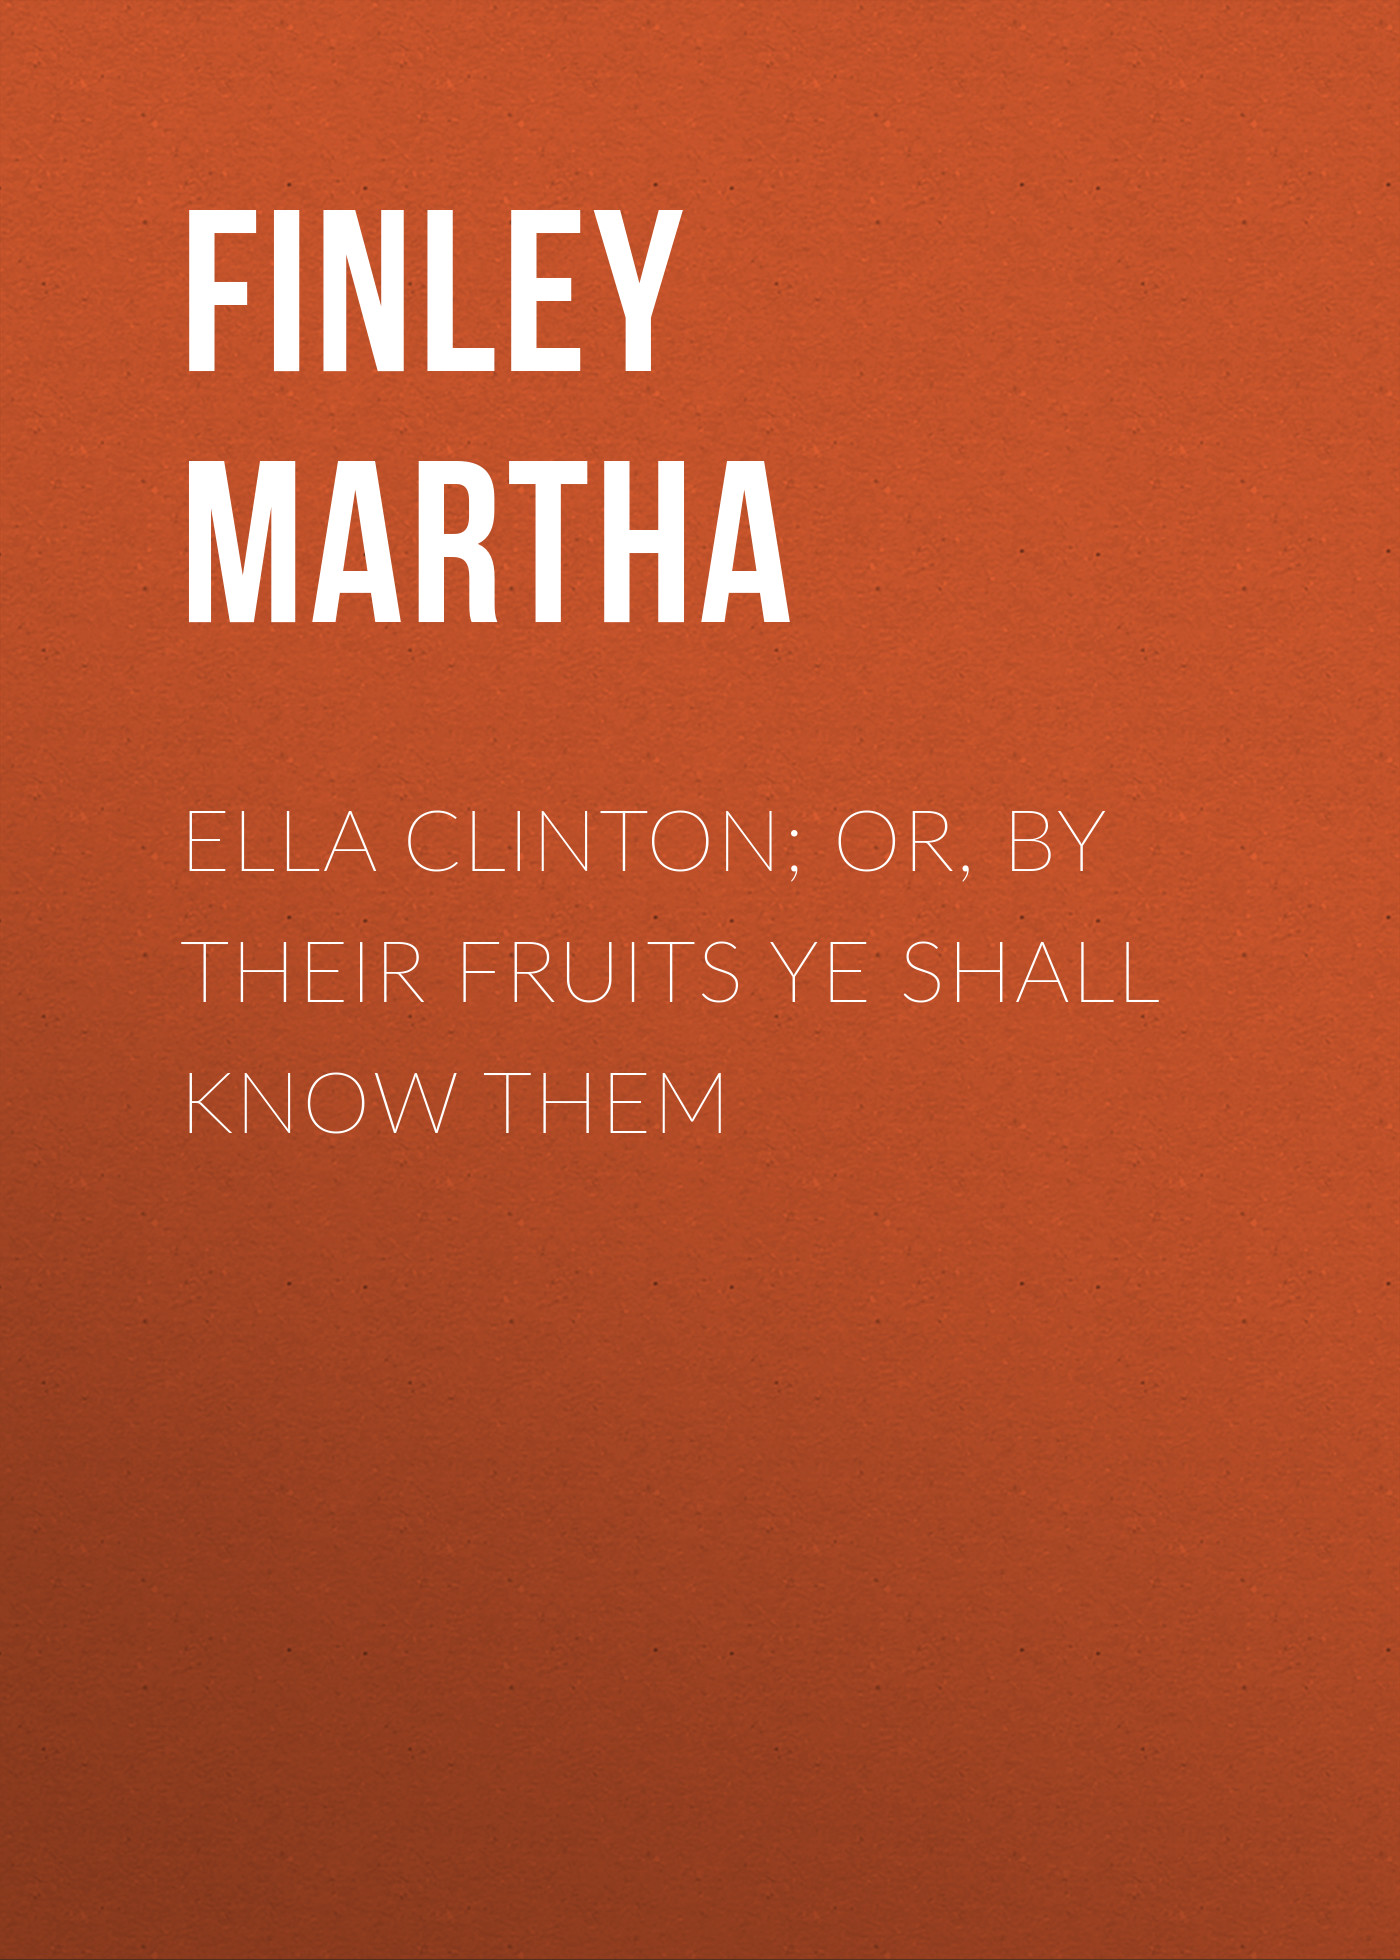 Finley Martha Ella Clinton; or, By Their Fruits Ye Shall Know Them